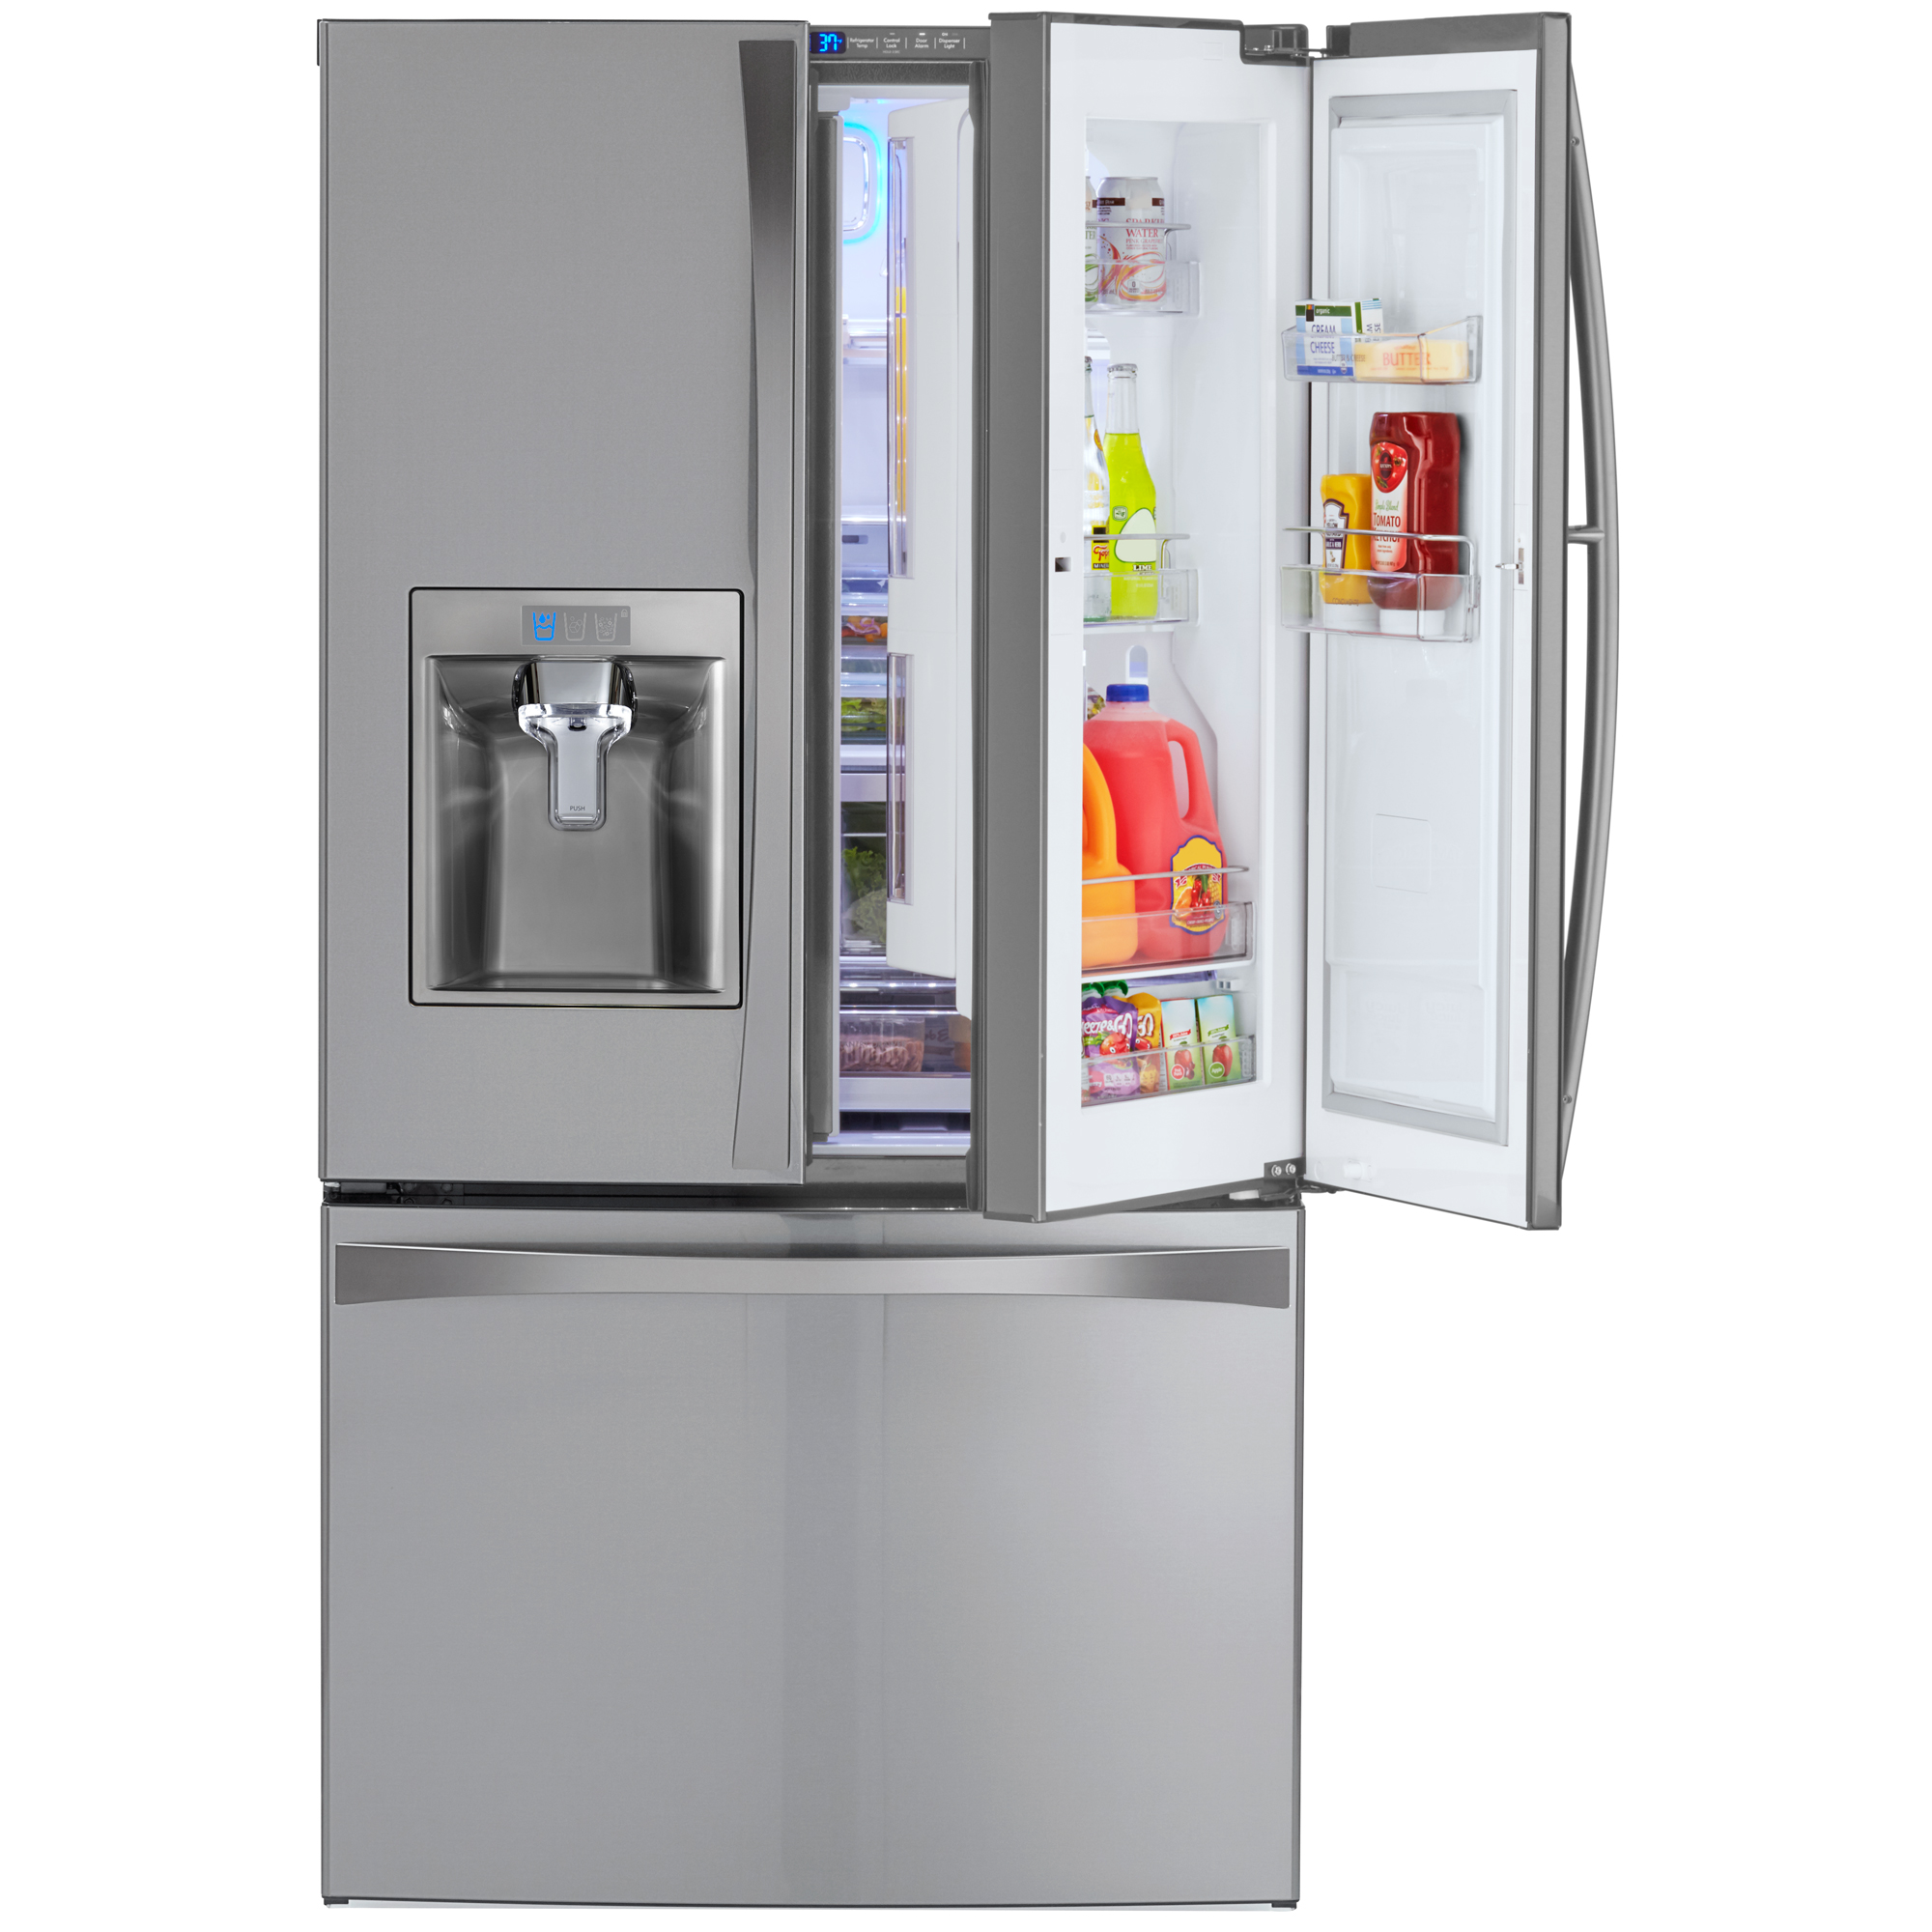 73165-28-5-cu-ft-French-Door-Bottom-Freezer-Refrigerator-w-Grab-N-Go%E2%84%A2-Door-%E2%80%93-Active-Finish%E2%84%A2